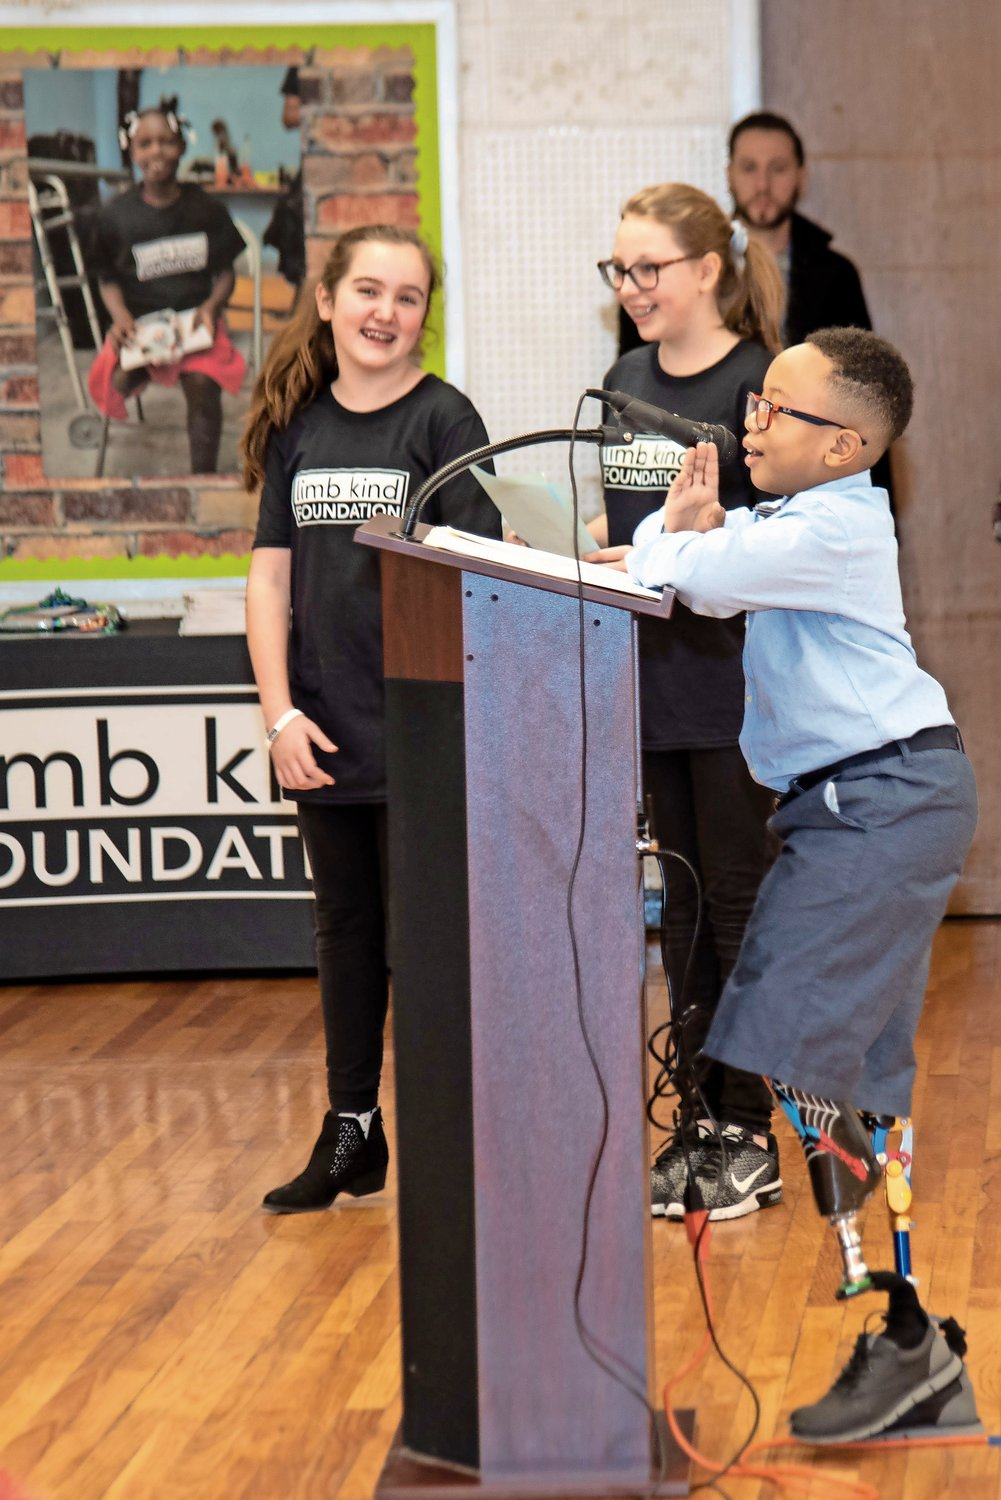 Limb Kind Foundation child ambassador Logan Passe thanked the Oceanside students for raising awareness for kids with limb differences.